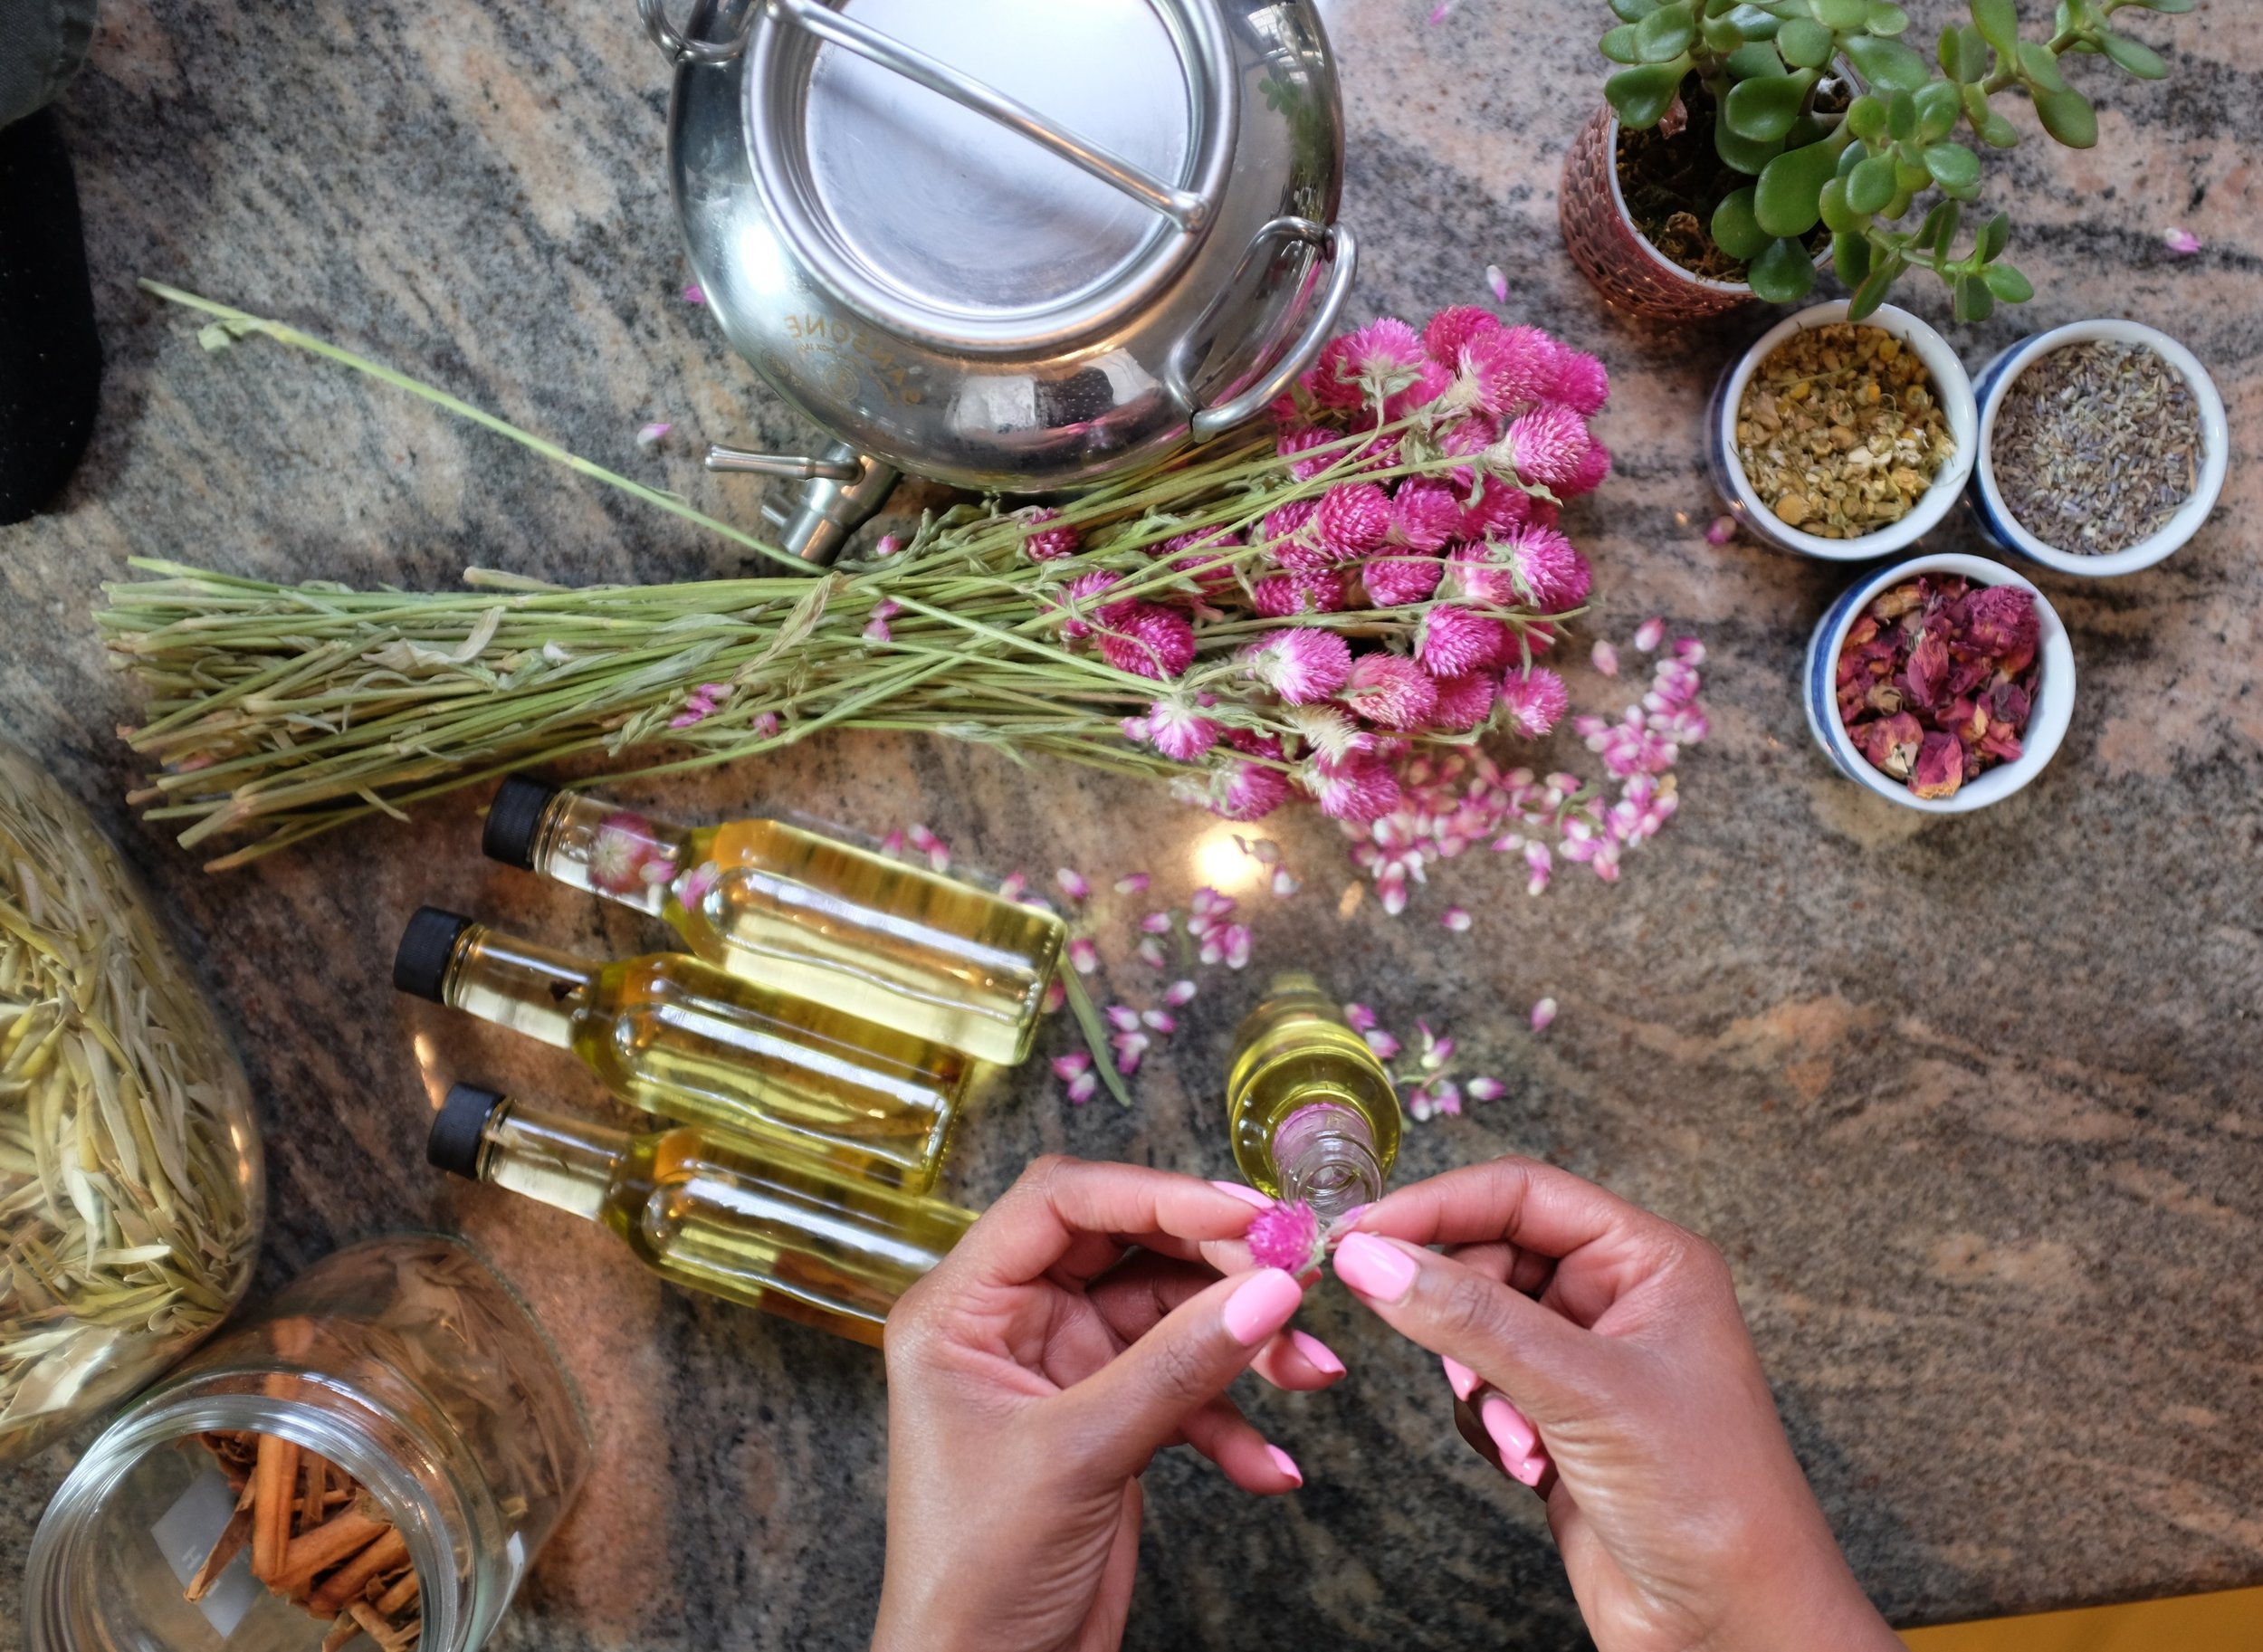 Our Whole Body Oils for Skin, Hair & Spirit - Pampering Blends crafted with farm-fresh herbs and flowers.